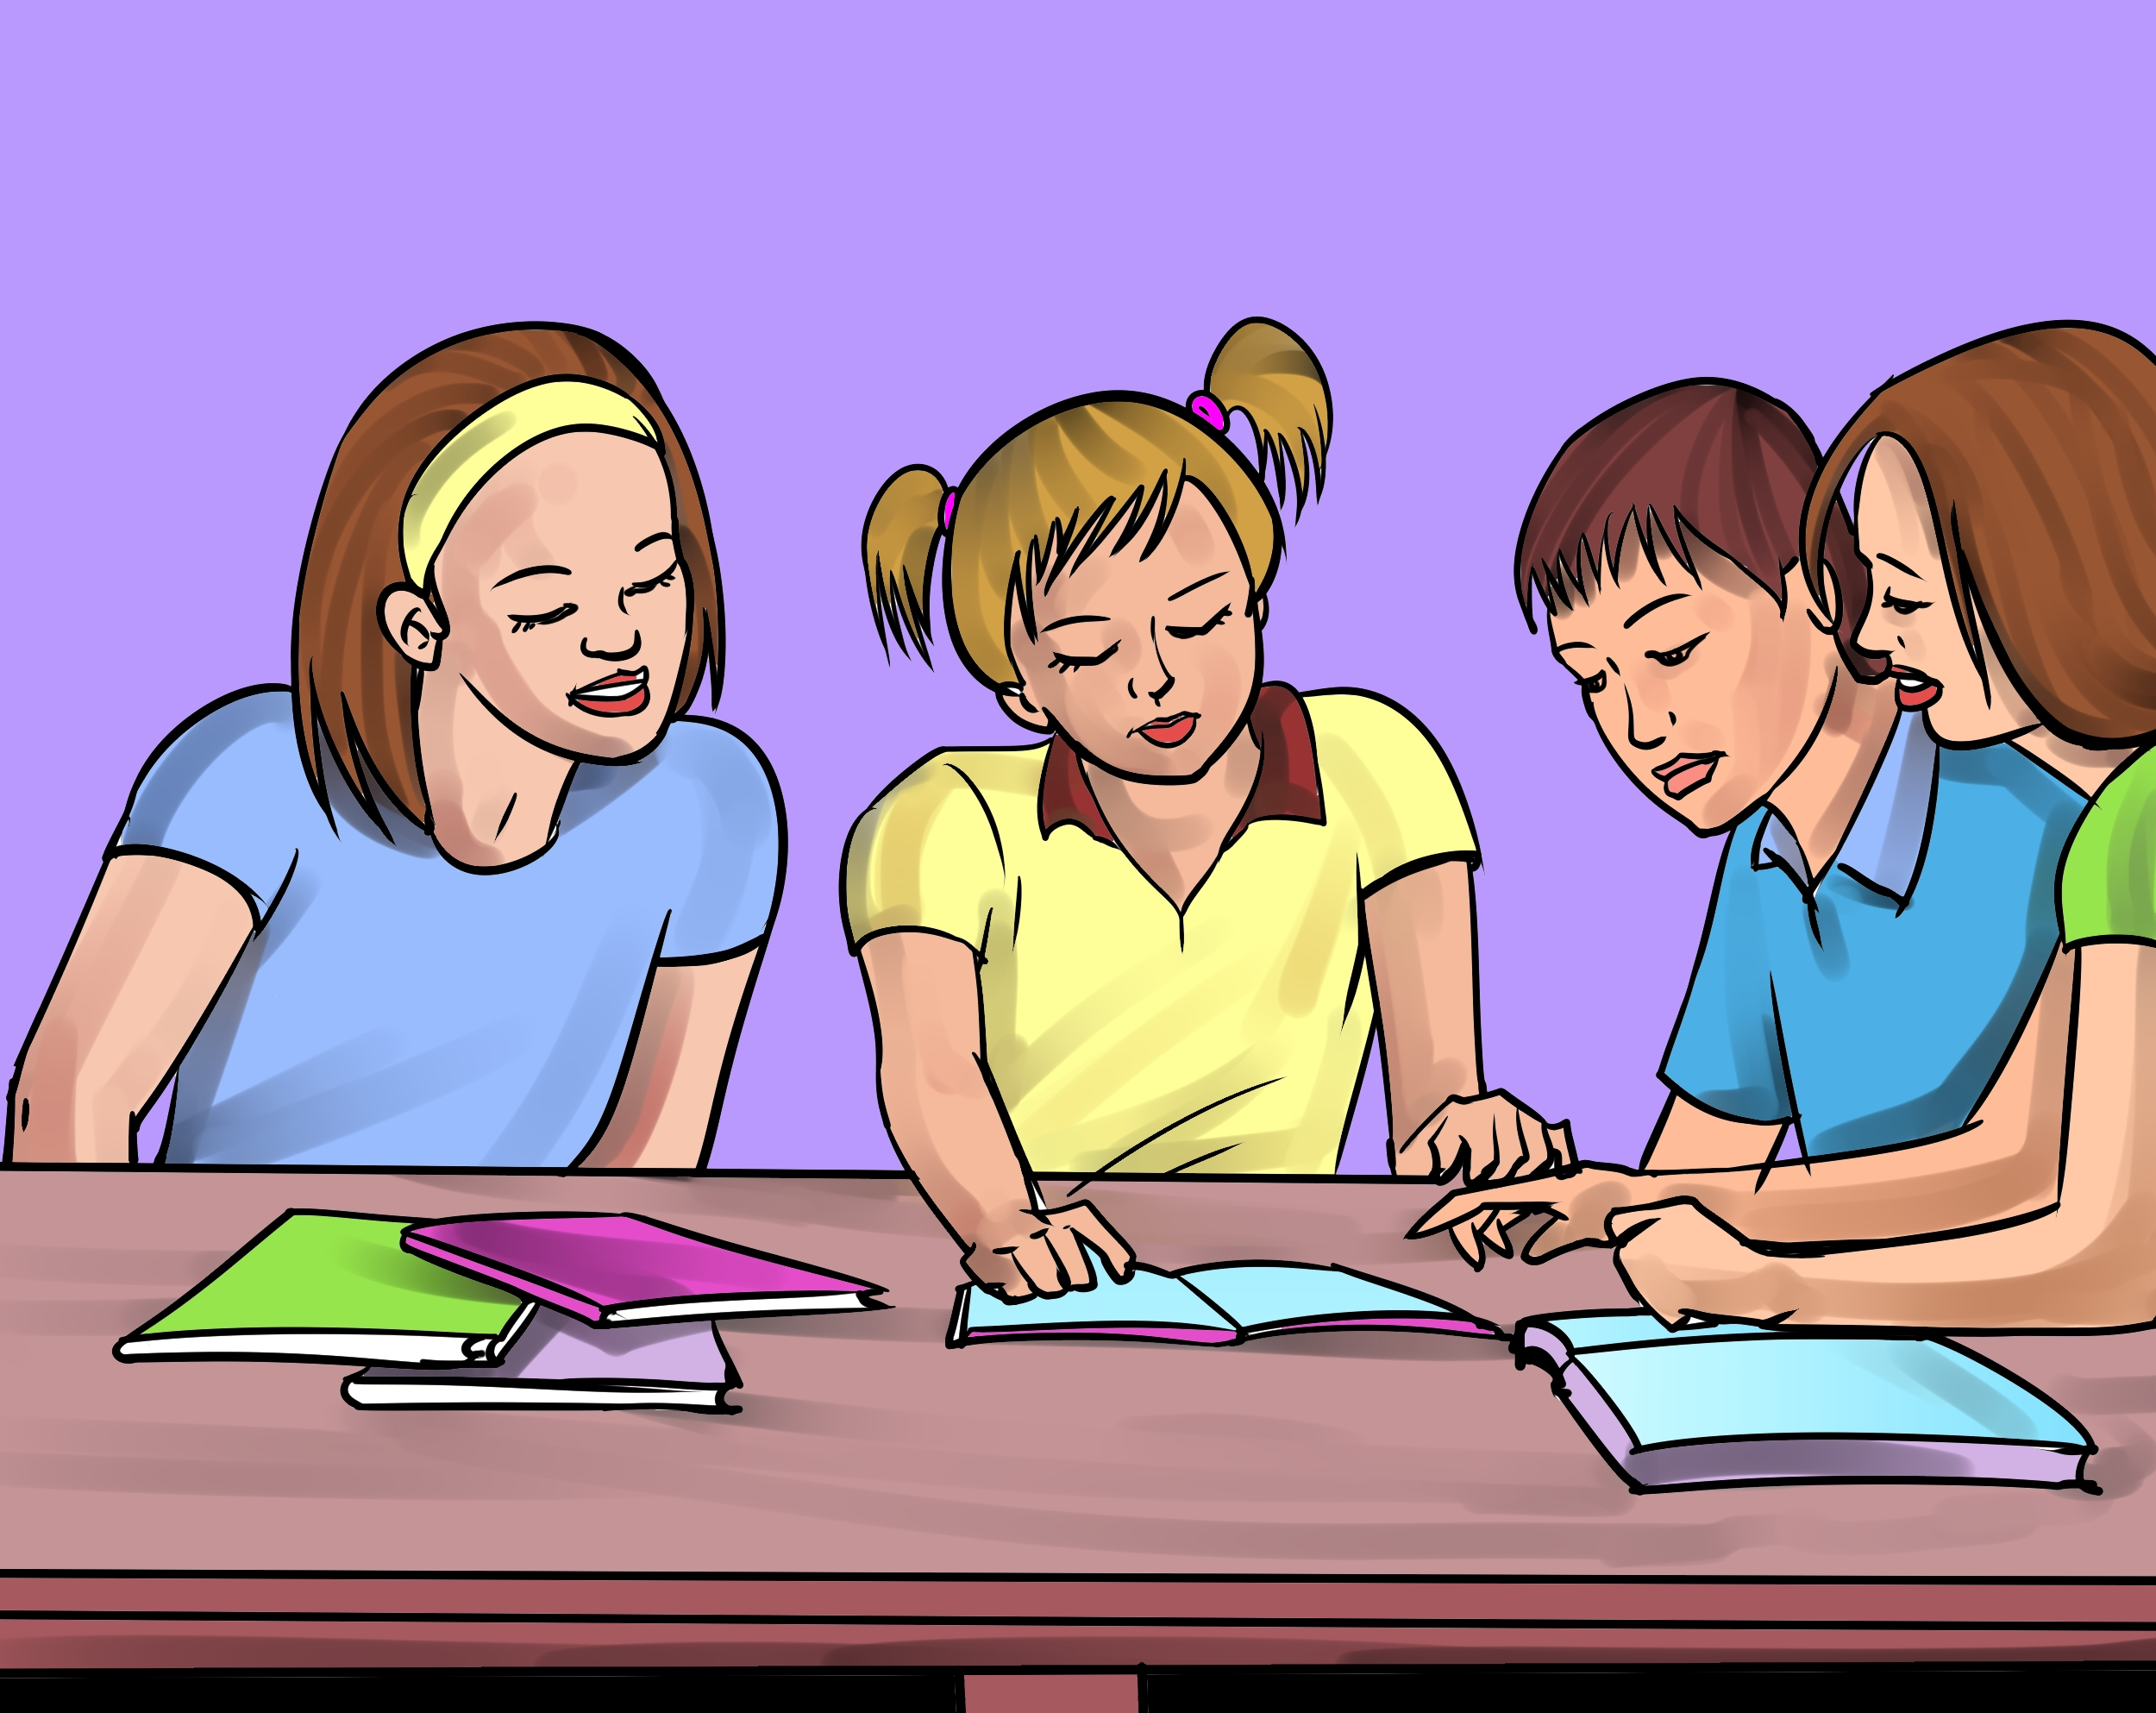 Bad clipart group work.  collection of school